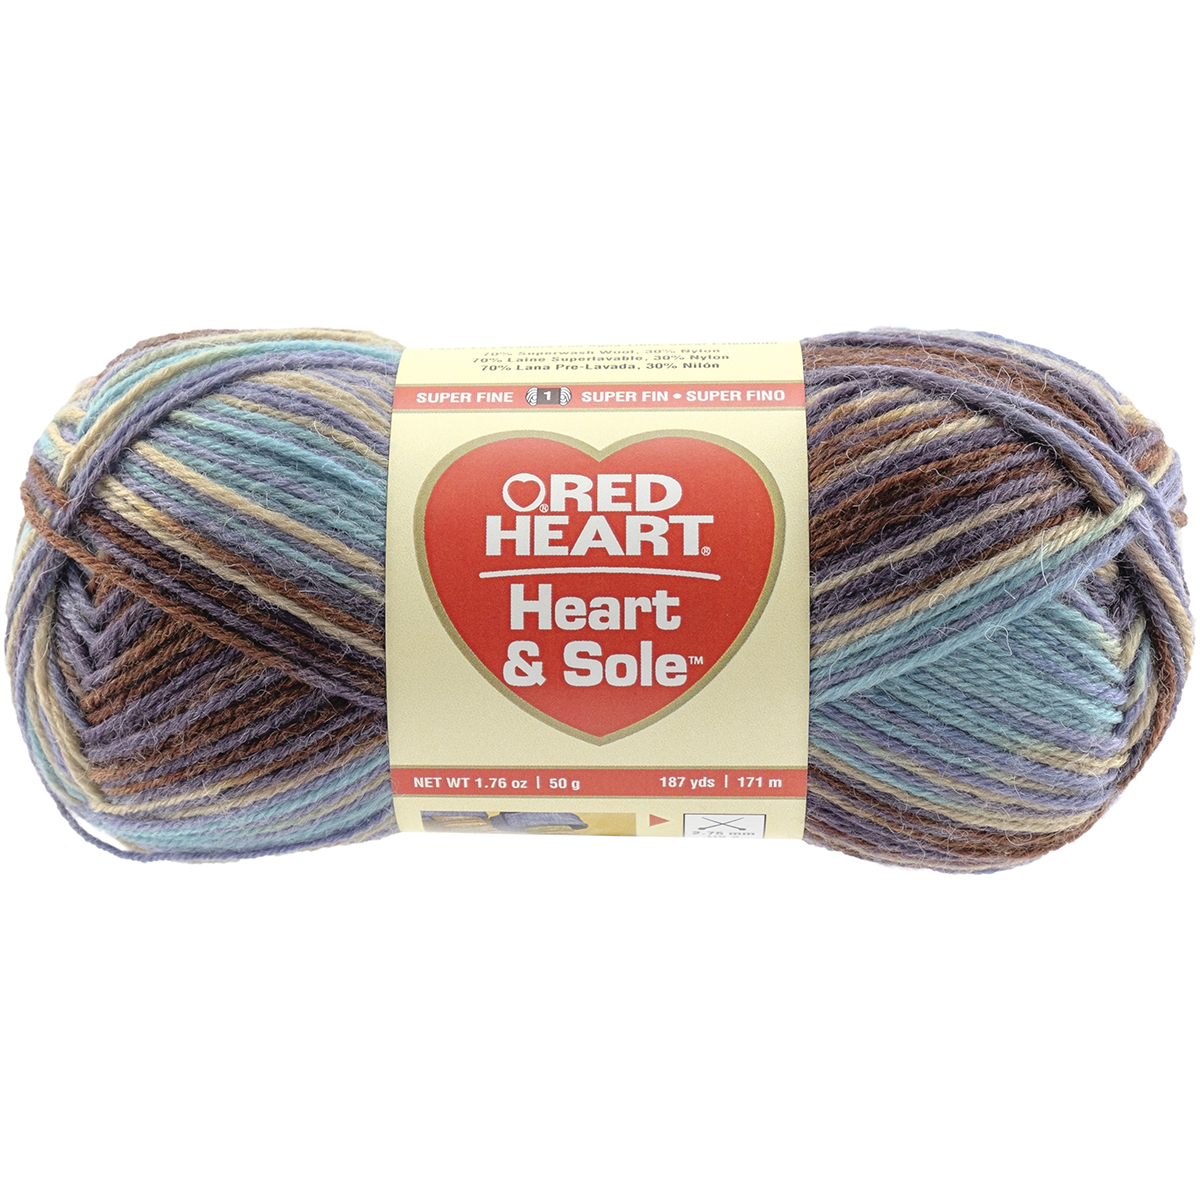 Red Heart Heart & Sole Yarn, Available in Multiple Colors